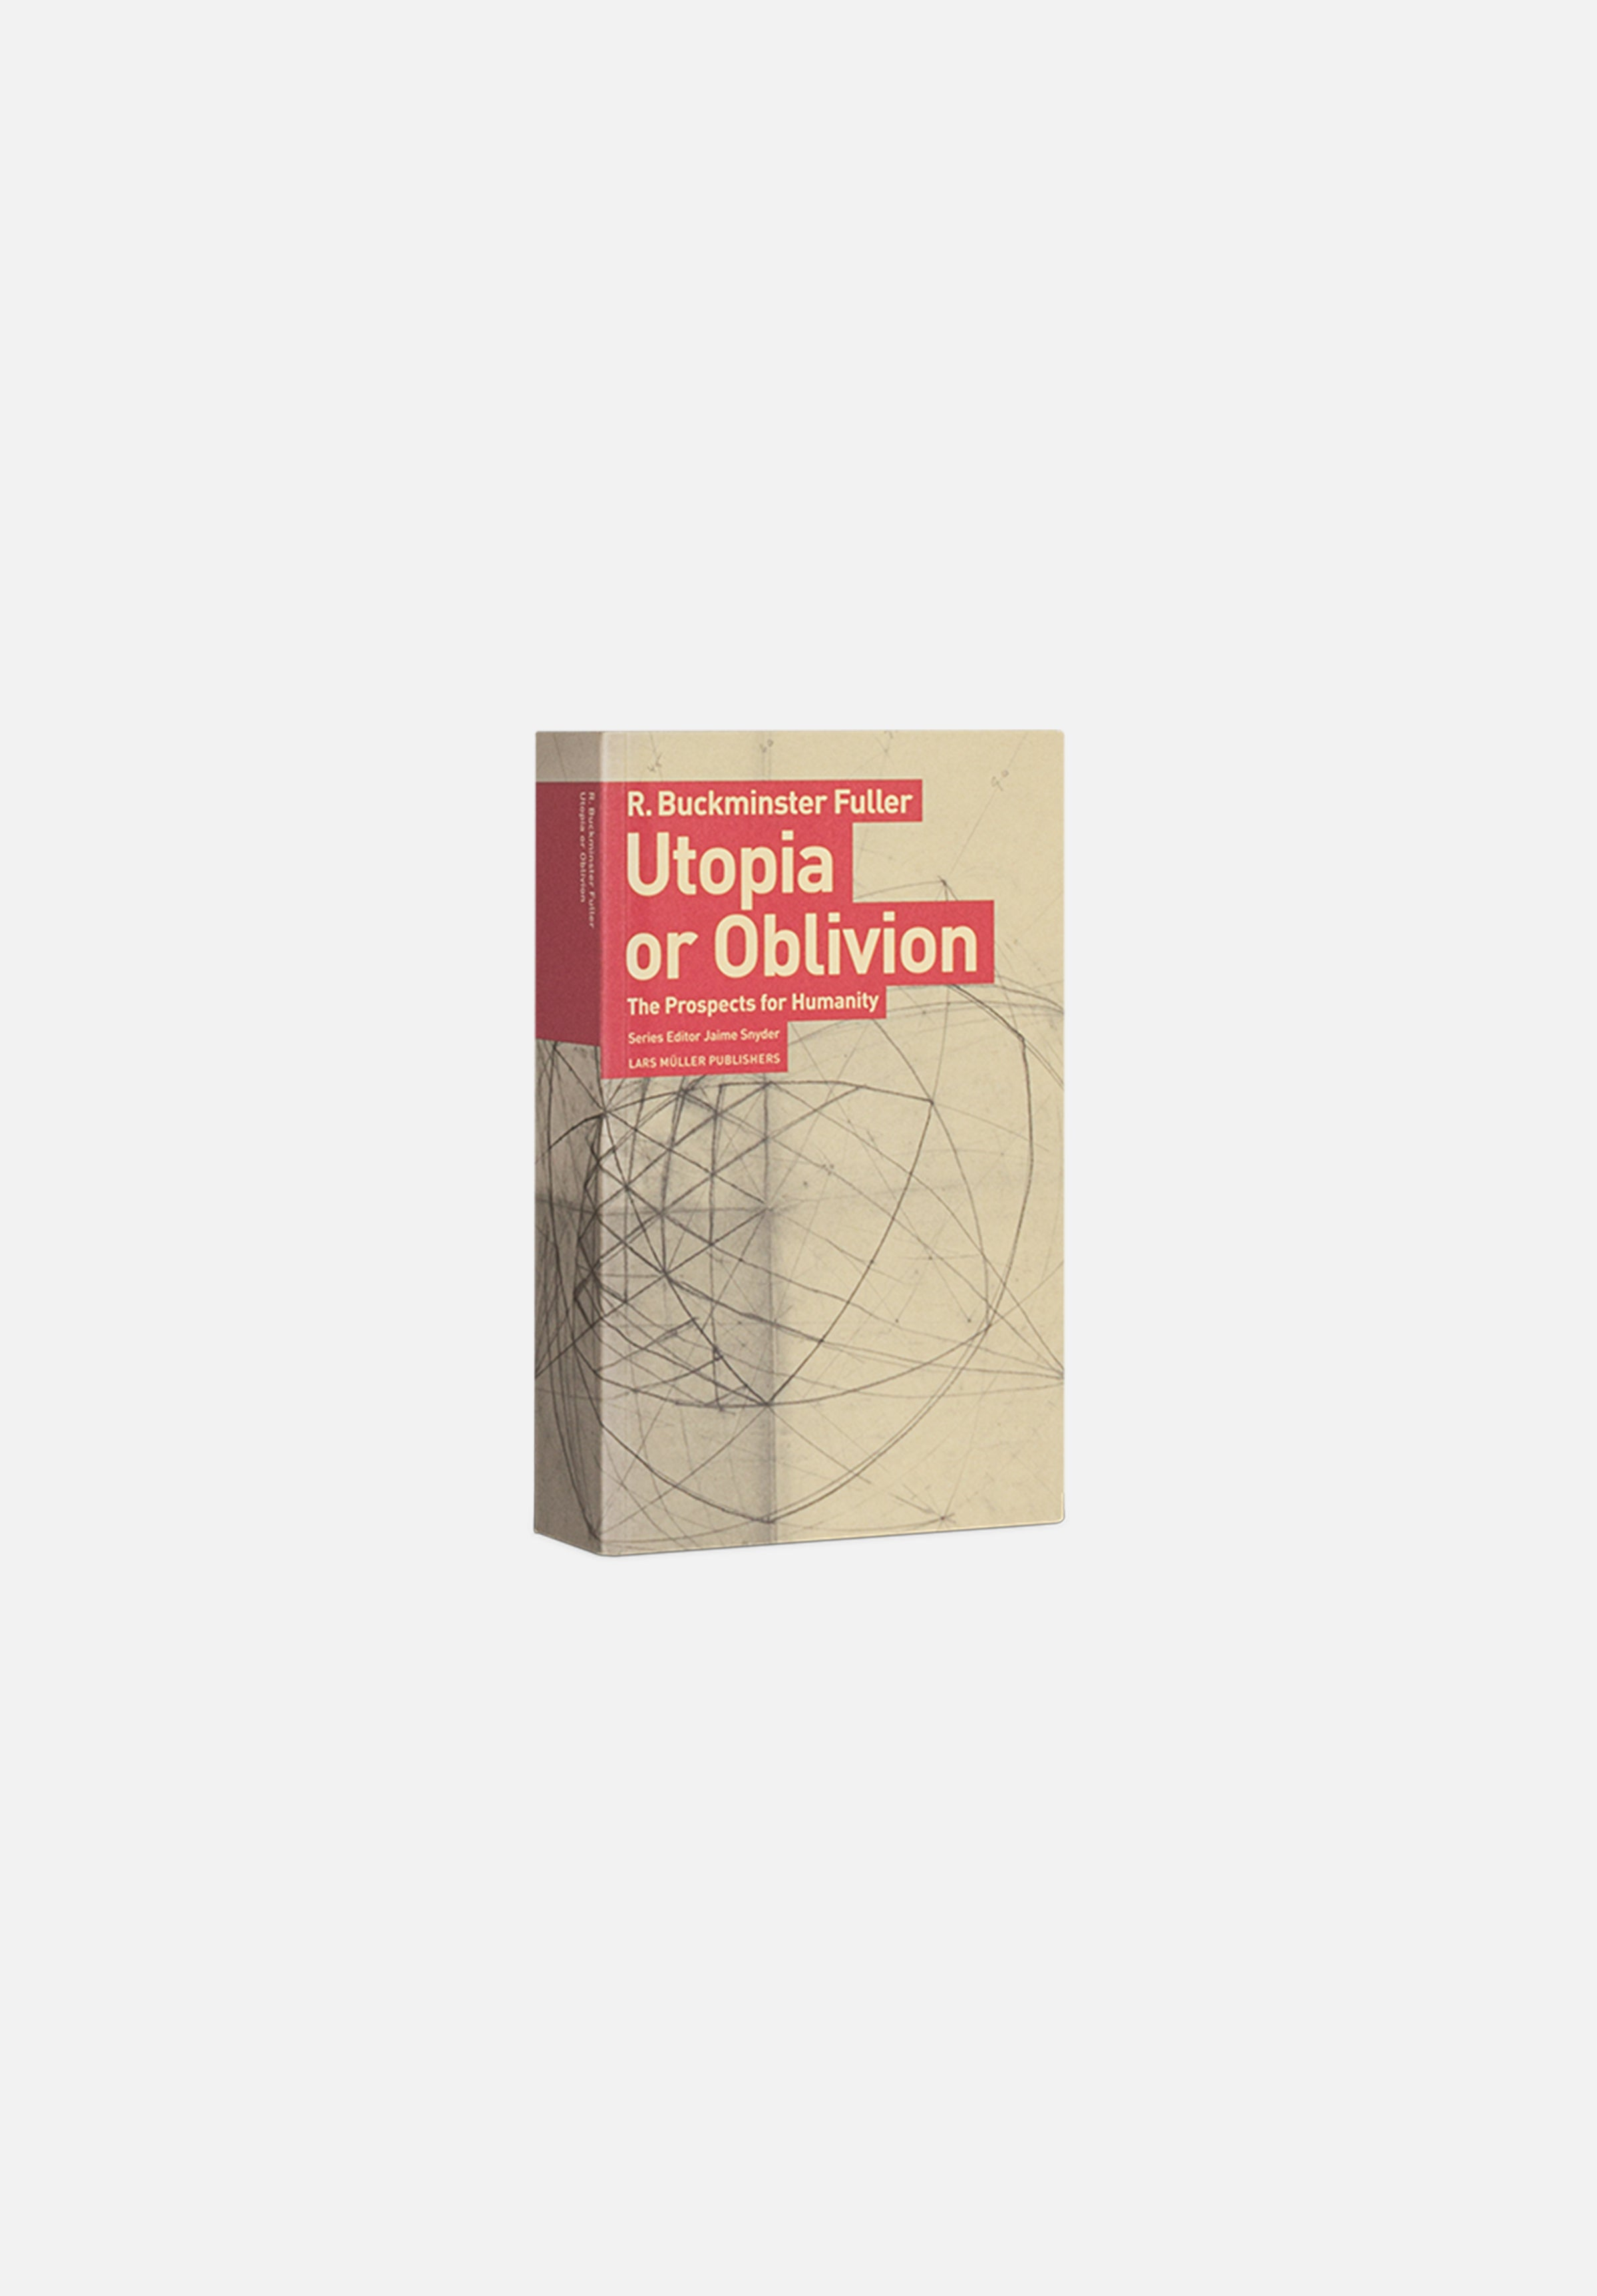 Utopia or Oblivion — The Prospects for Humanity